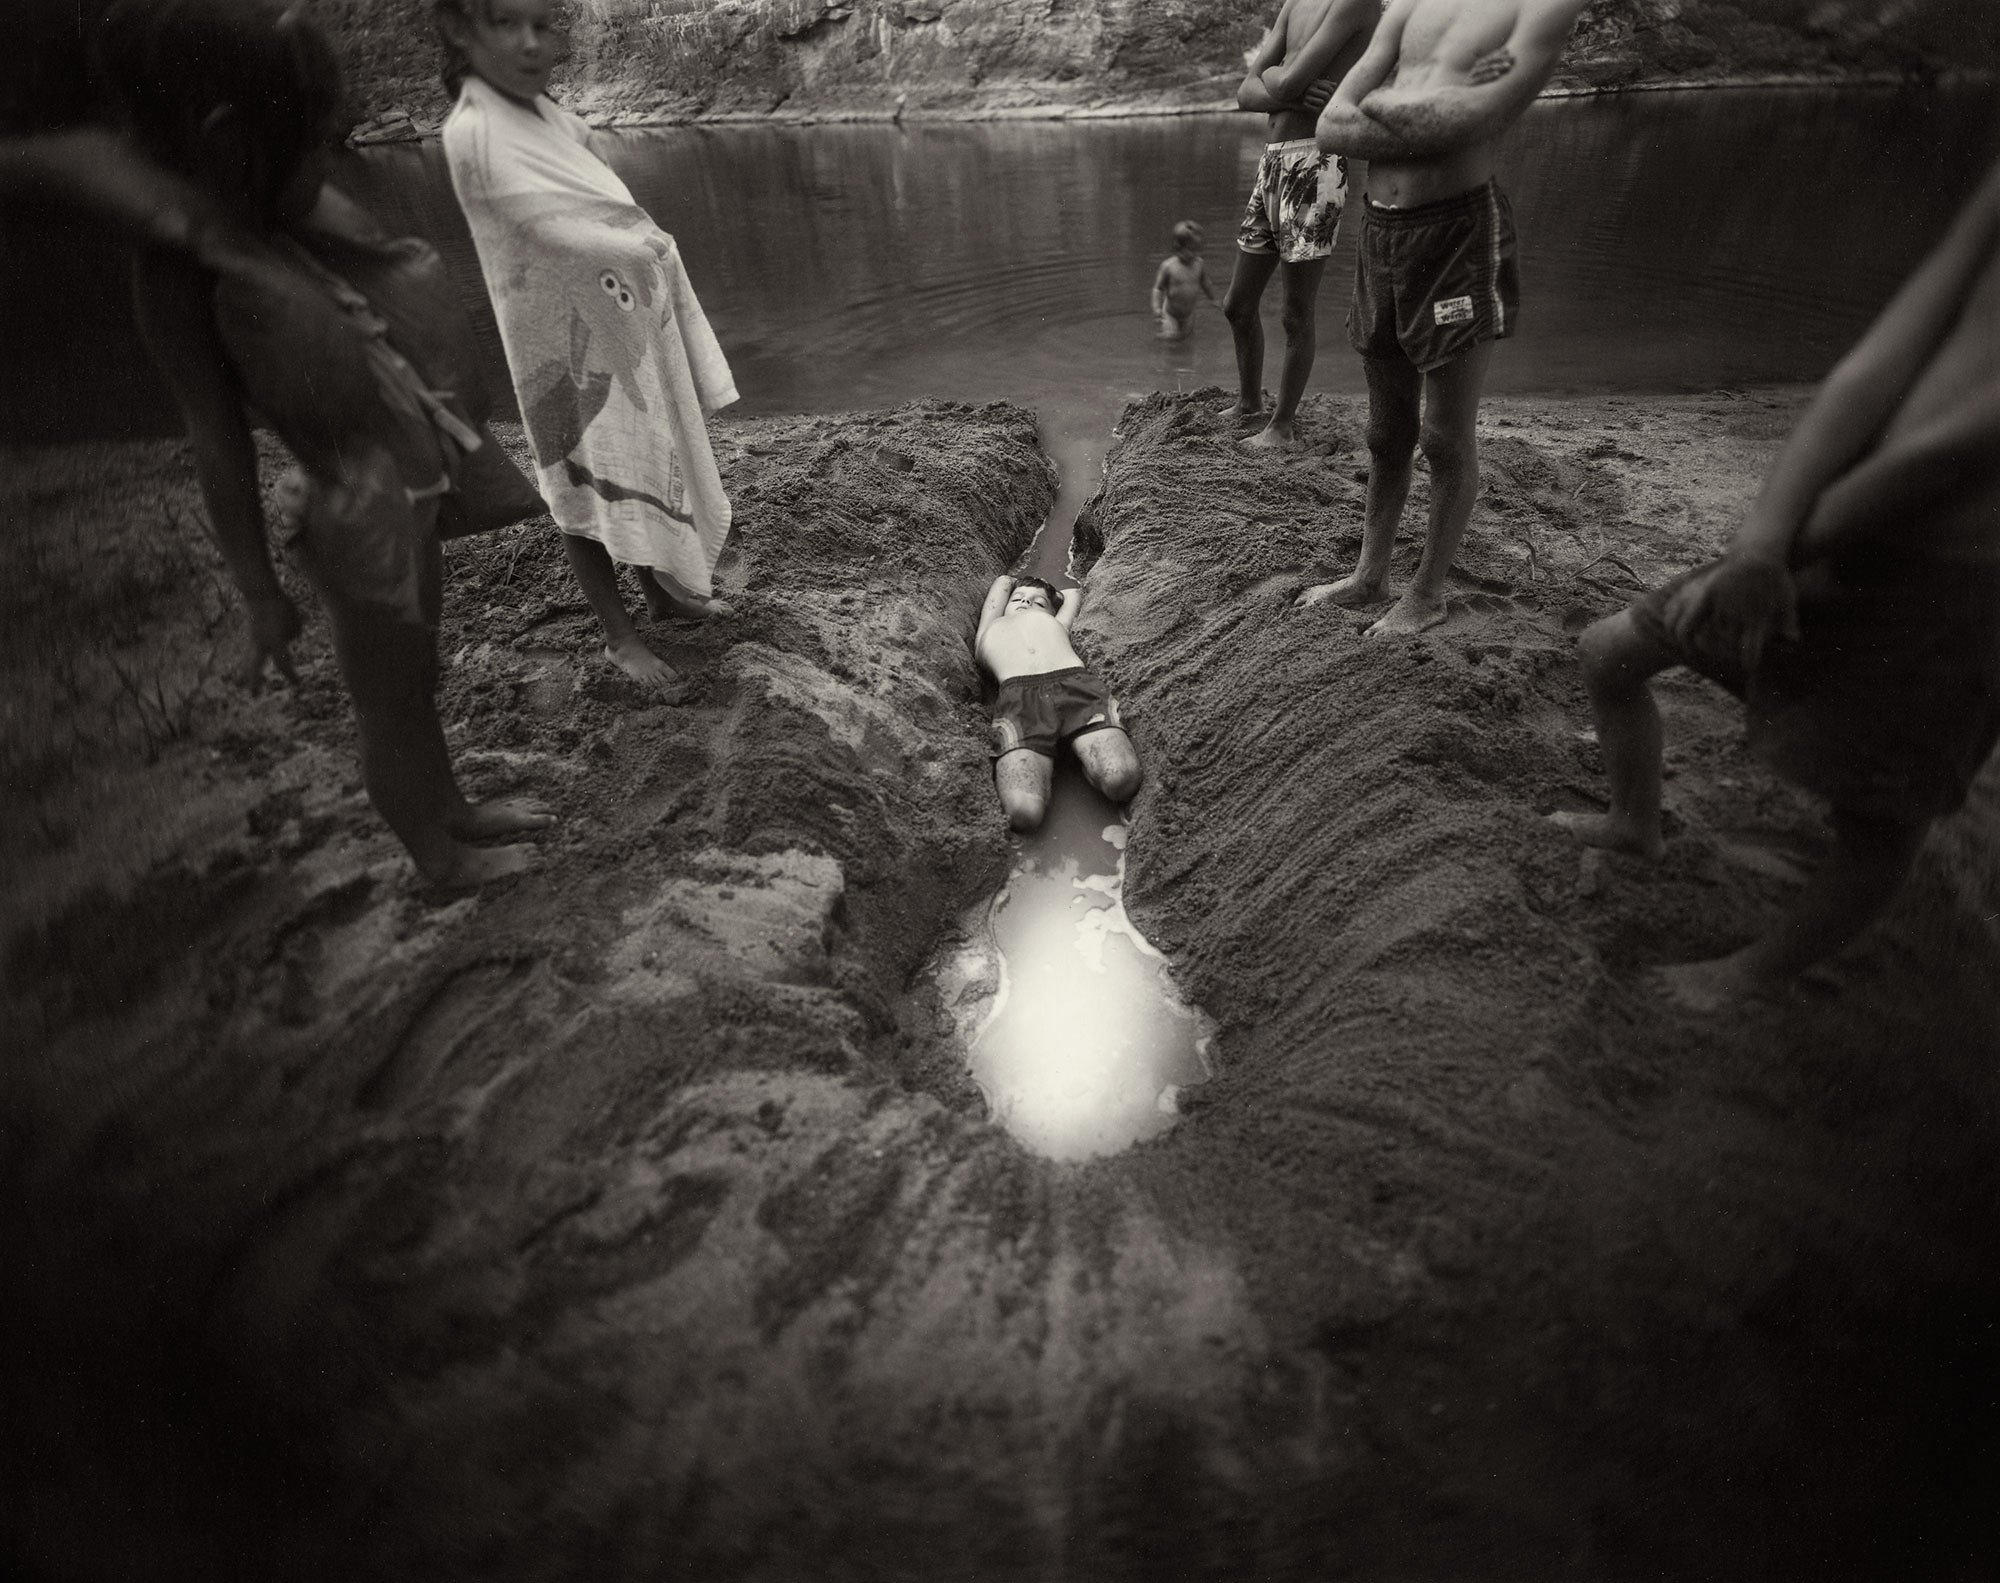 sally_mann_photography oldskull 10